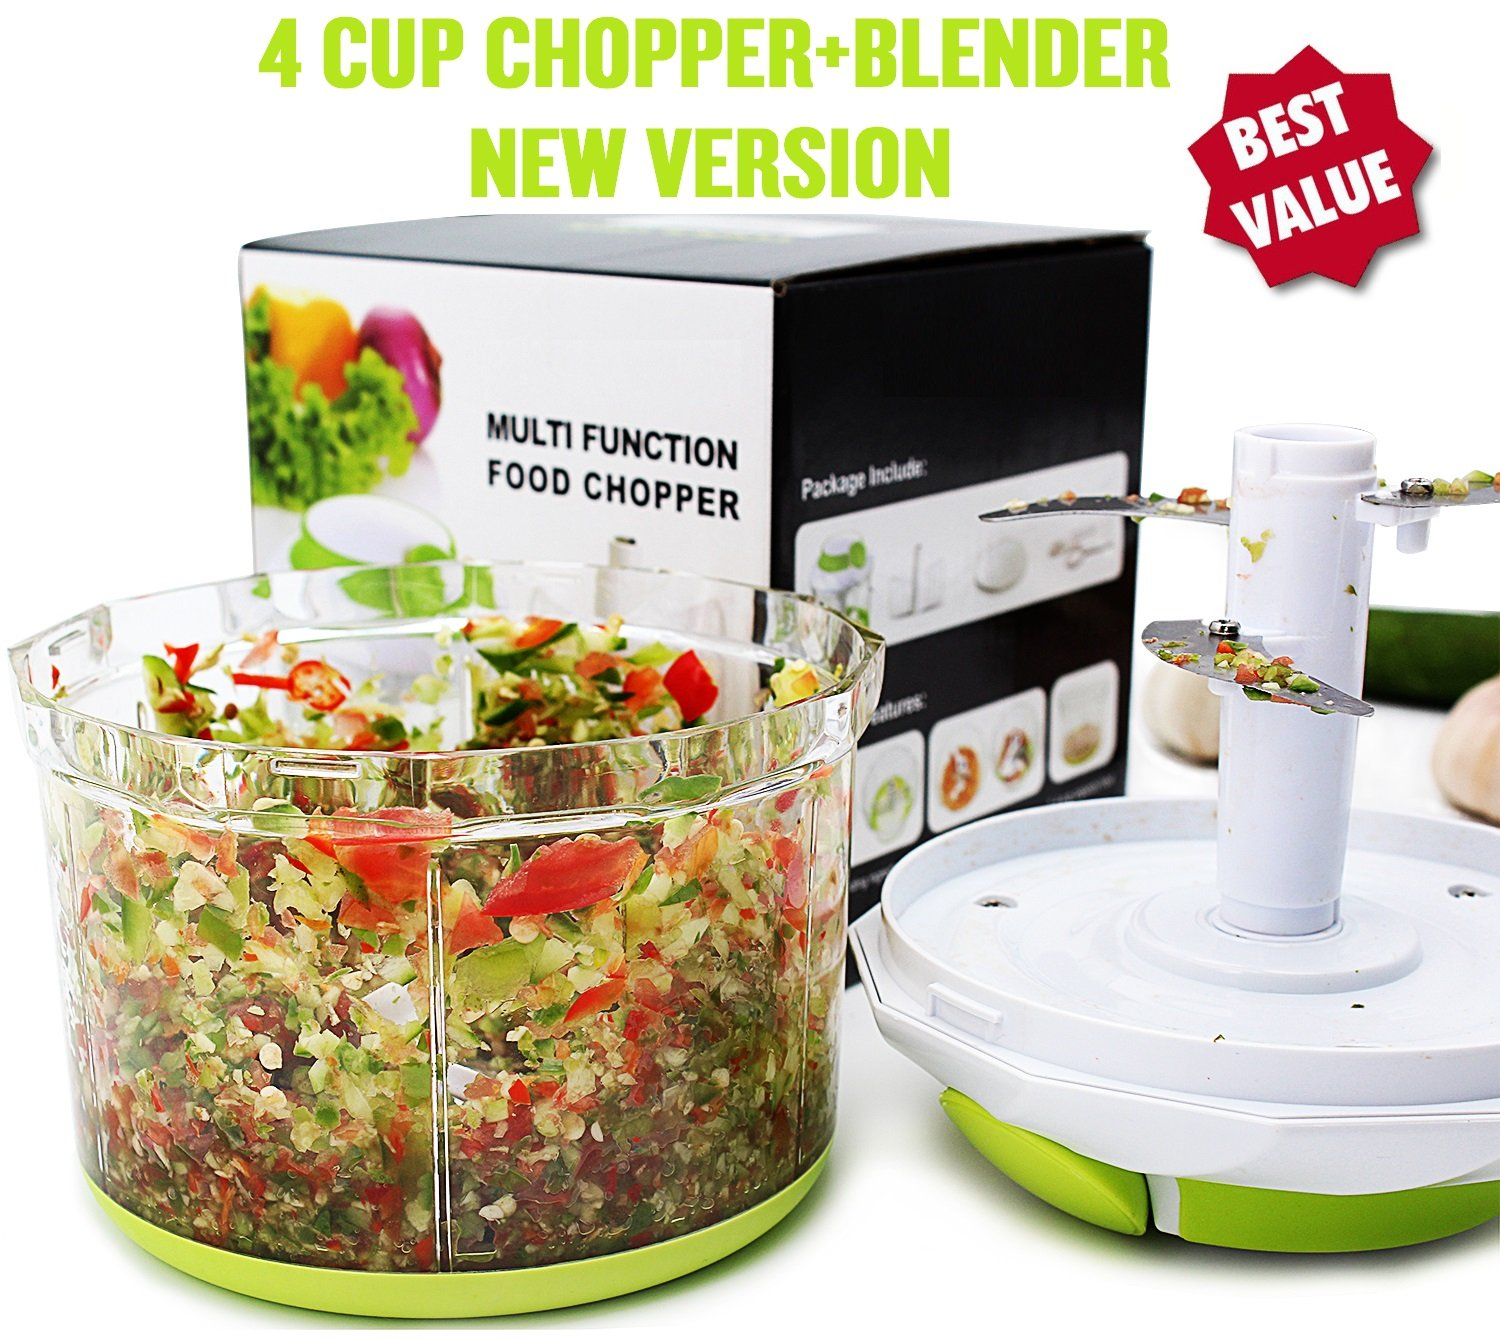 Chopper products - which one is better to buy